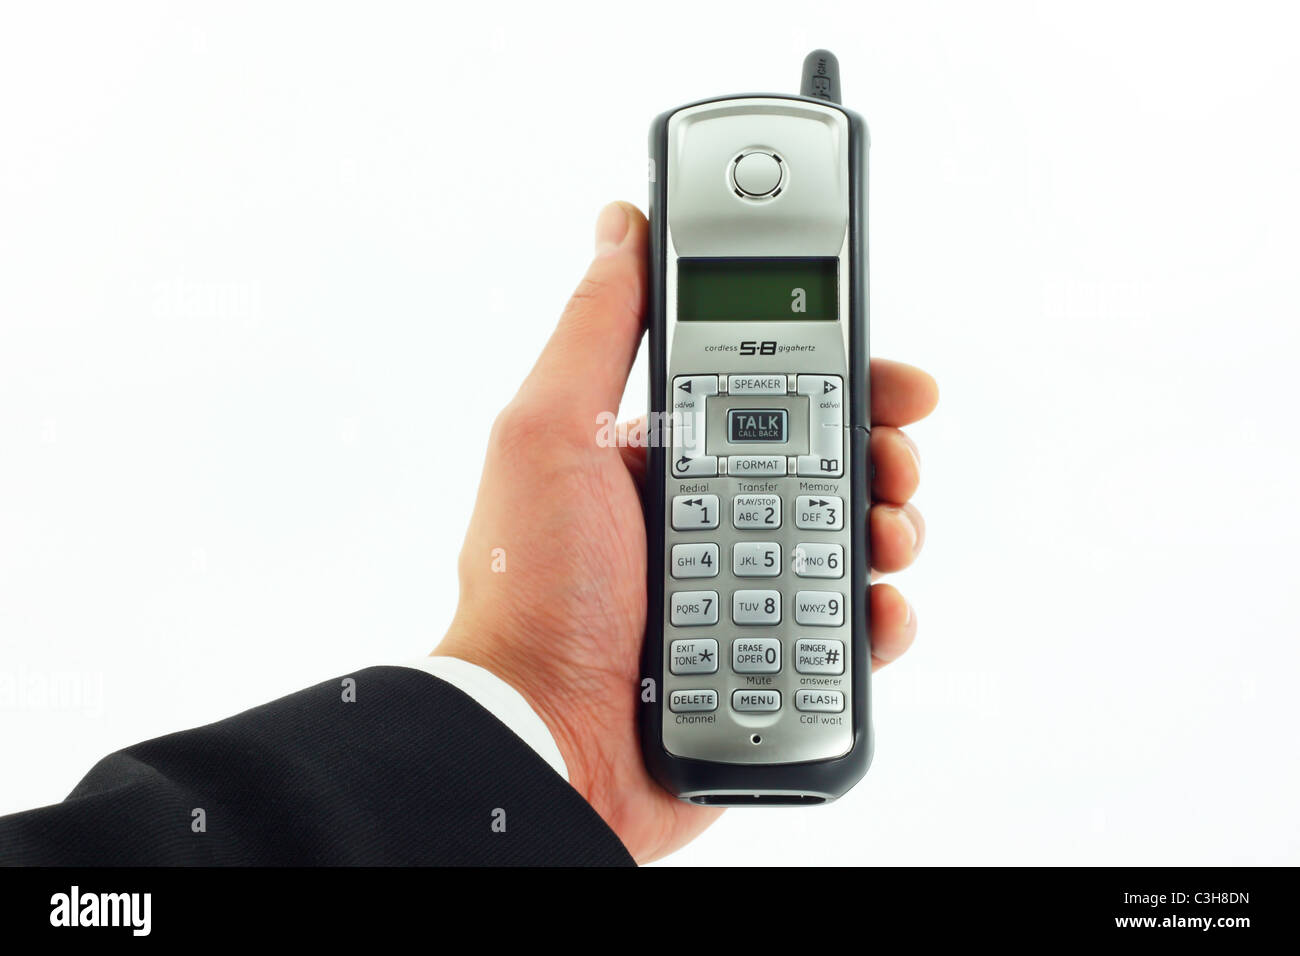 Business man's hand holding a cordless phone - Stock Image